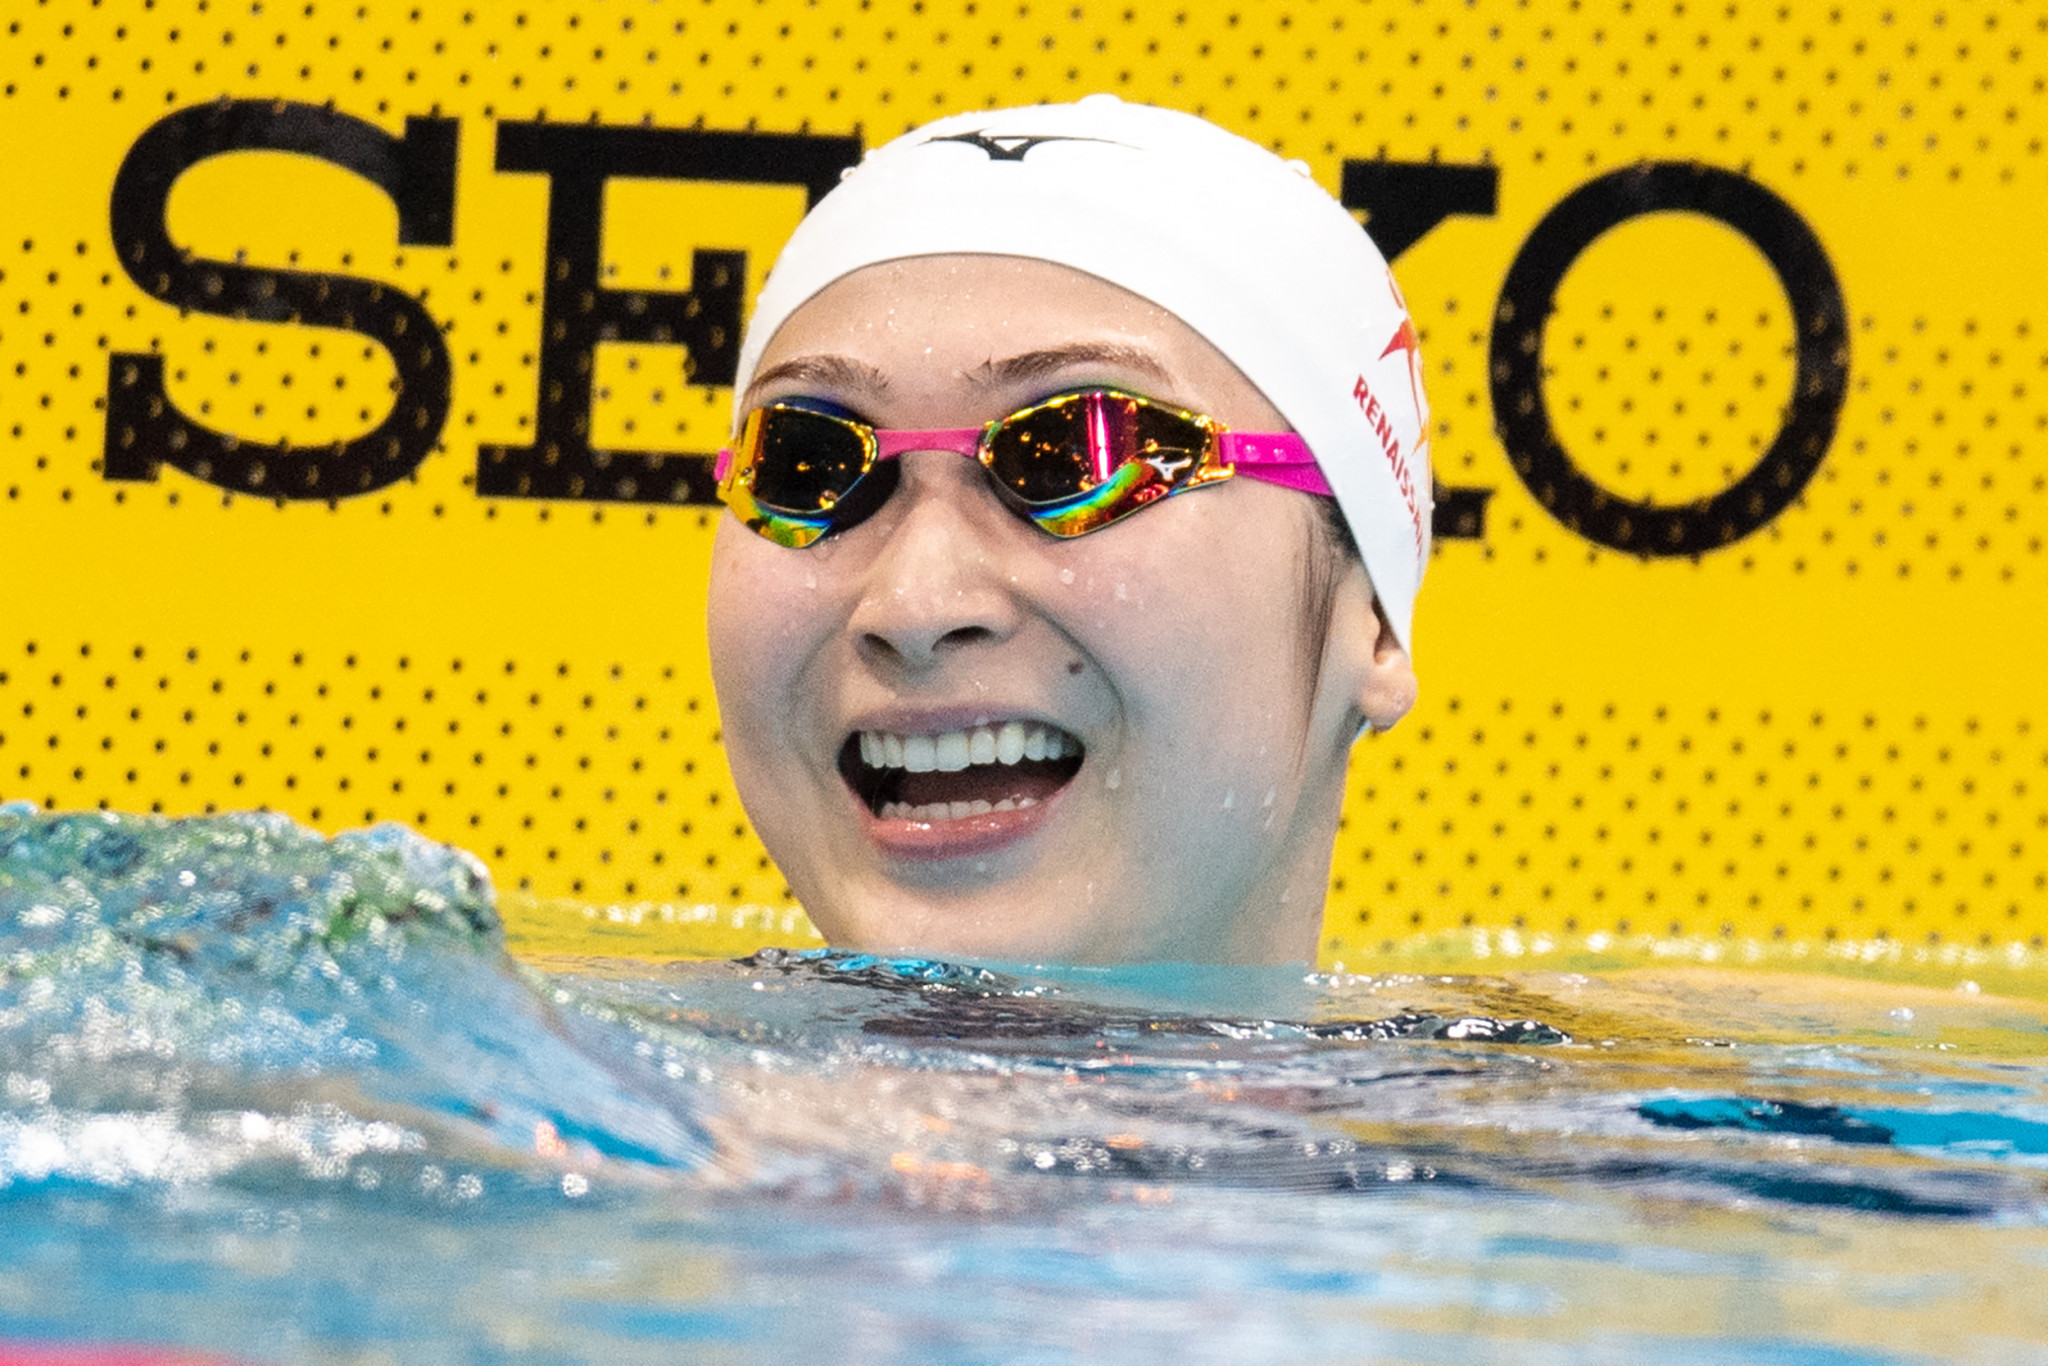 Japanese swimmer Ikee secures another Tokyo 2020 berth following cancer recovery